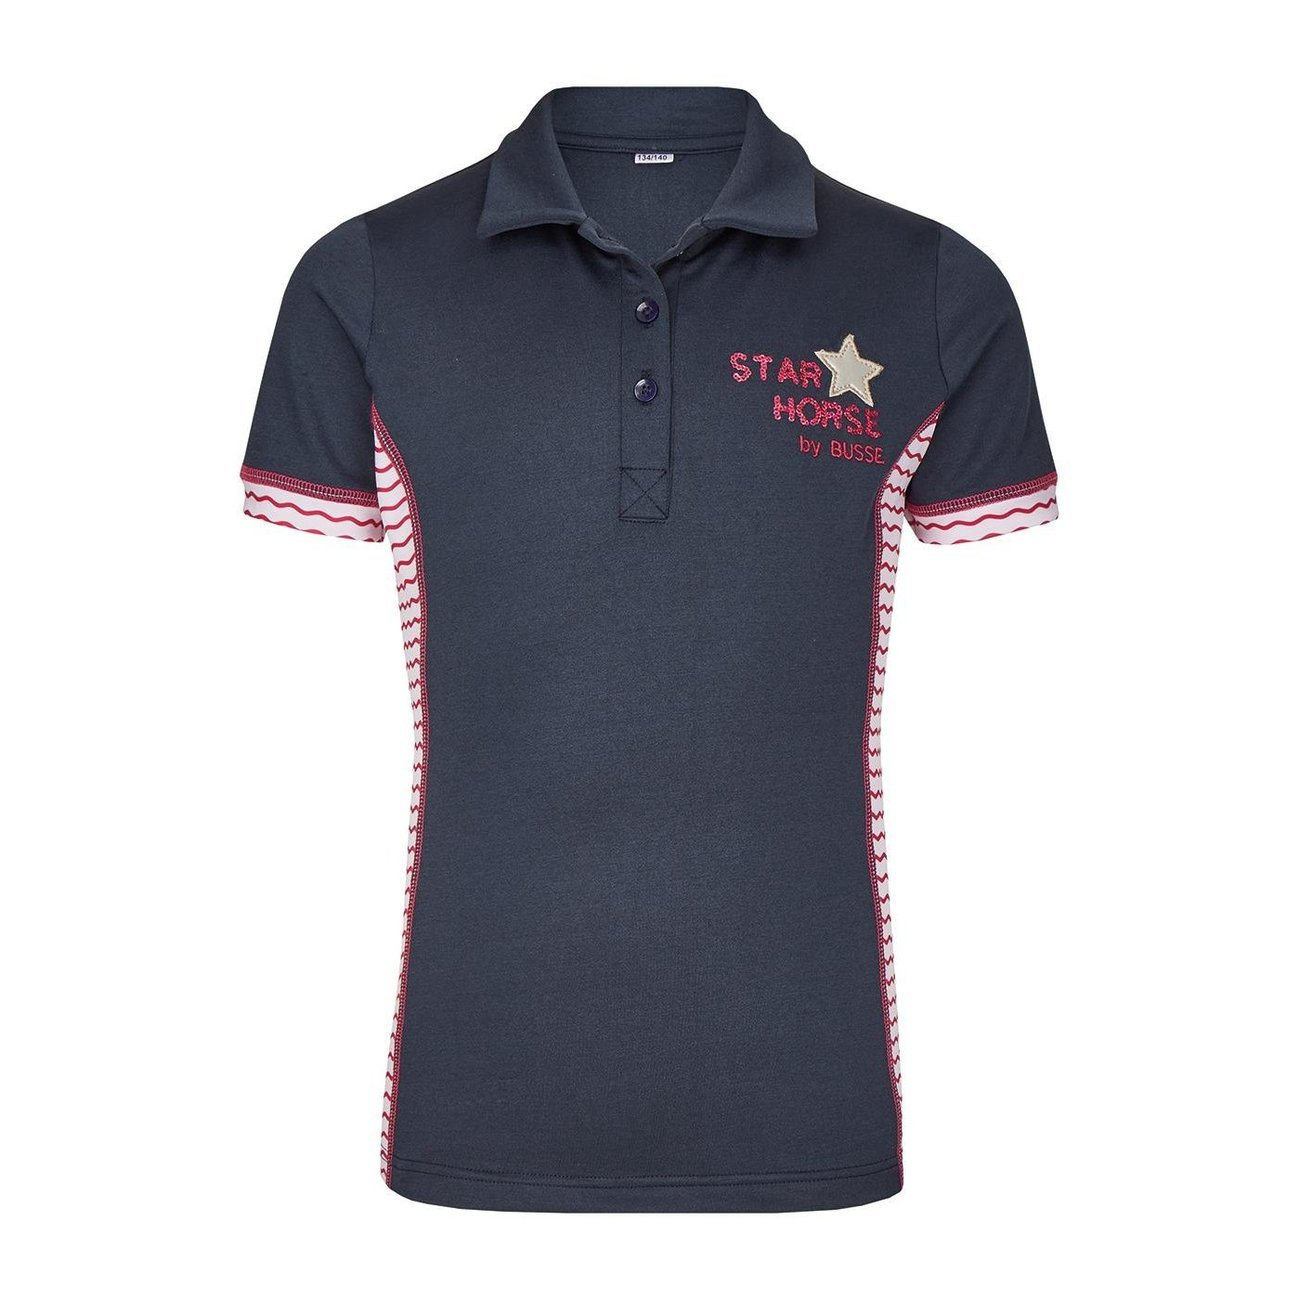 BUSSE Star Horse Polo Shirt